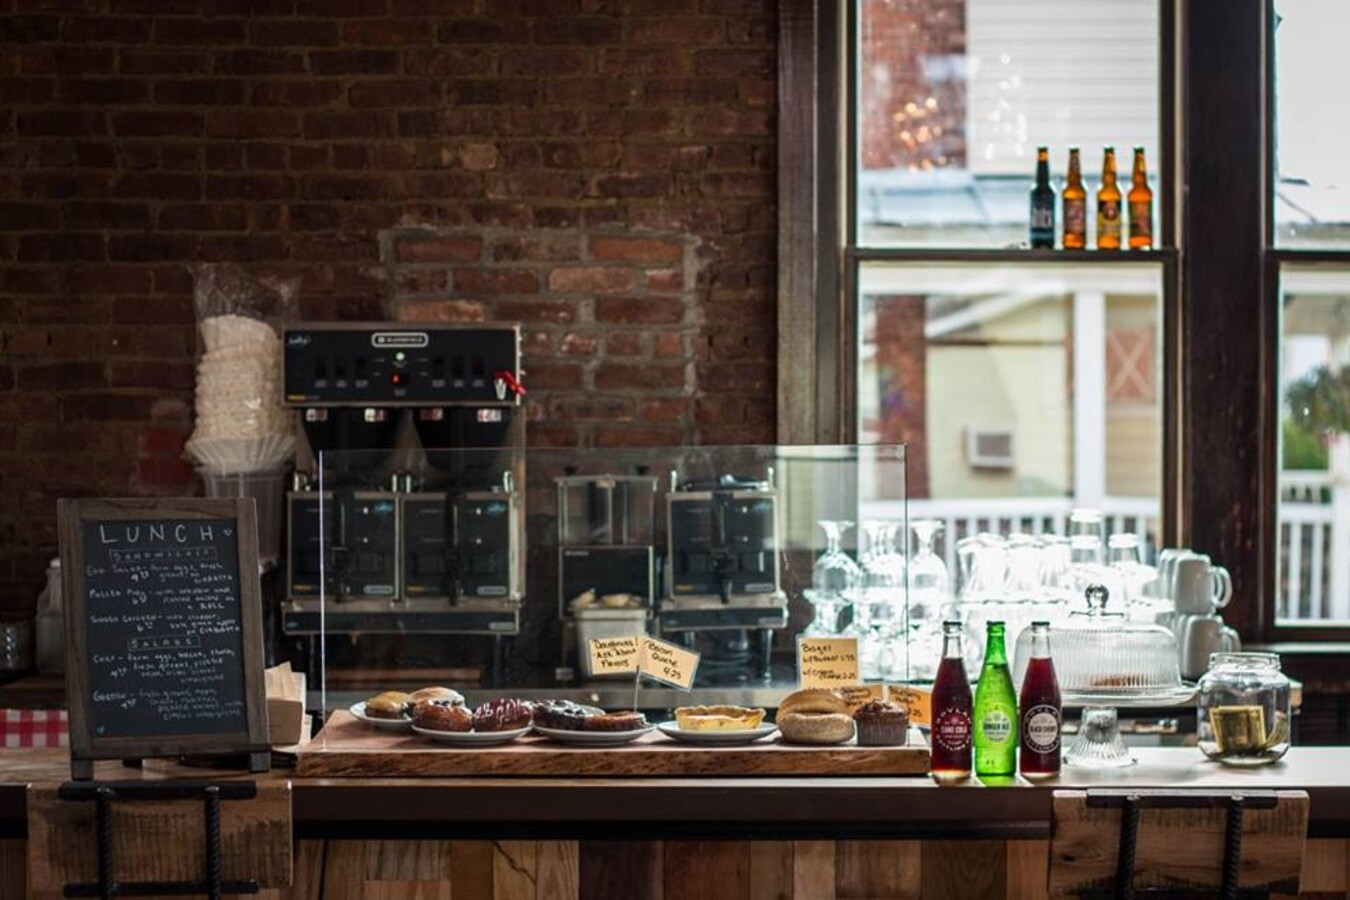 Counter with pastries at Windham Local Public House